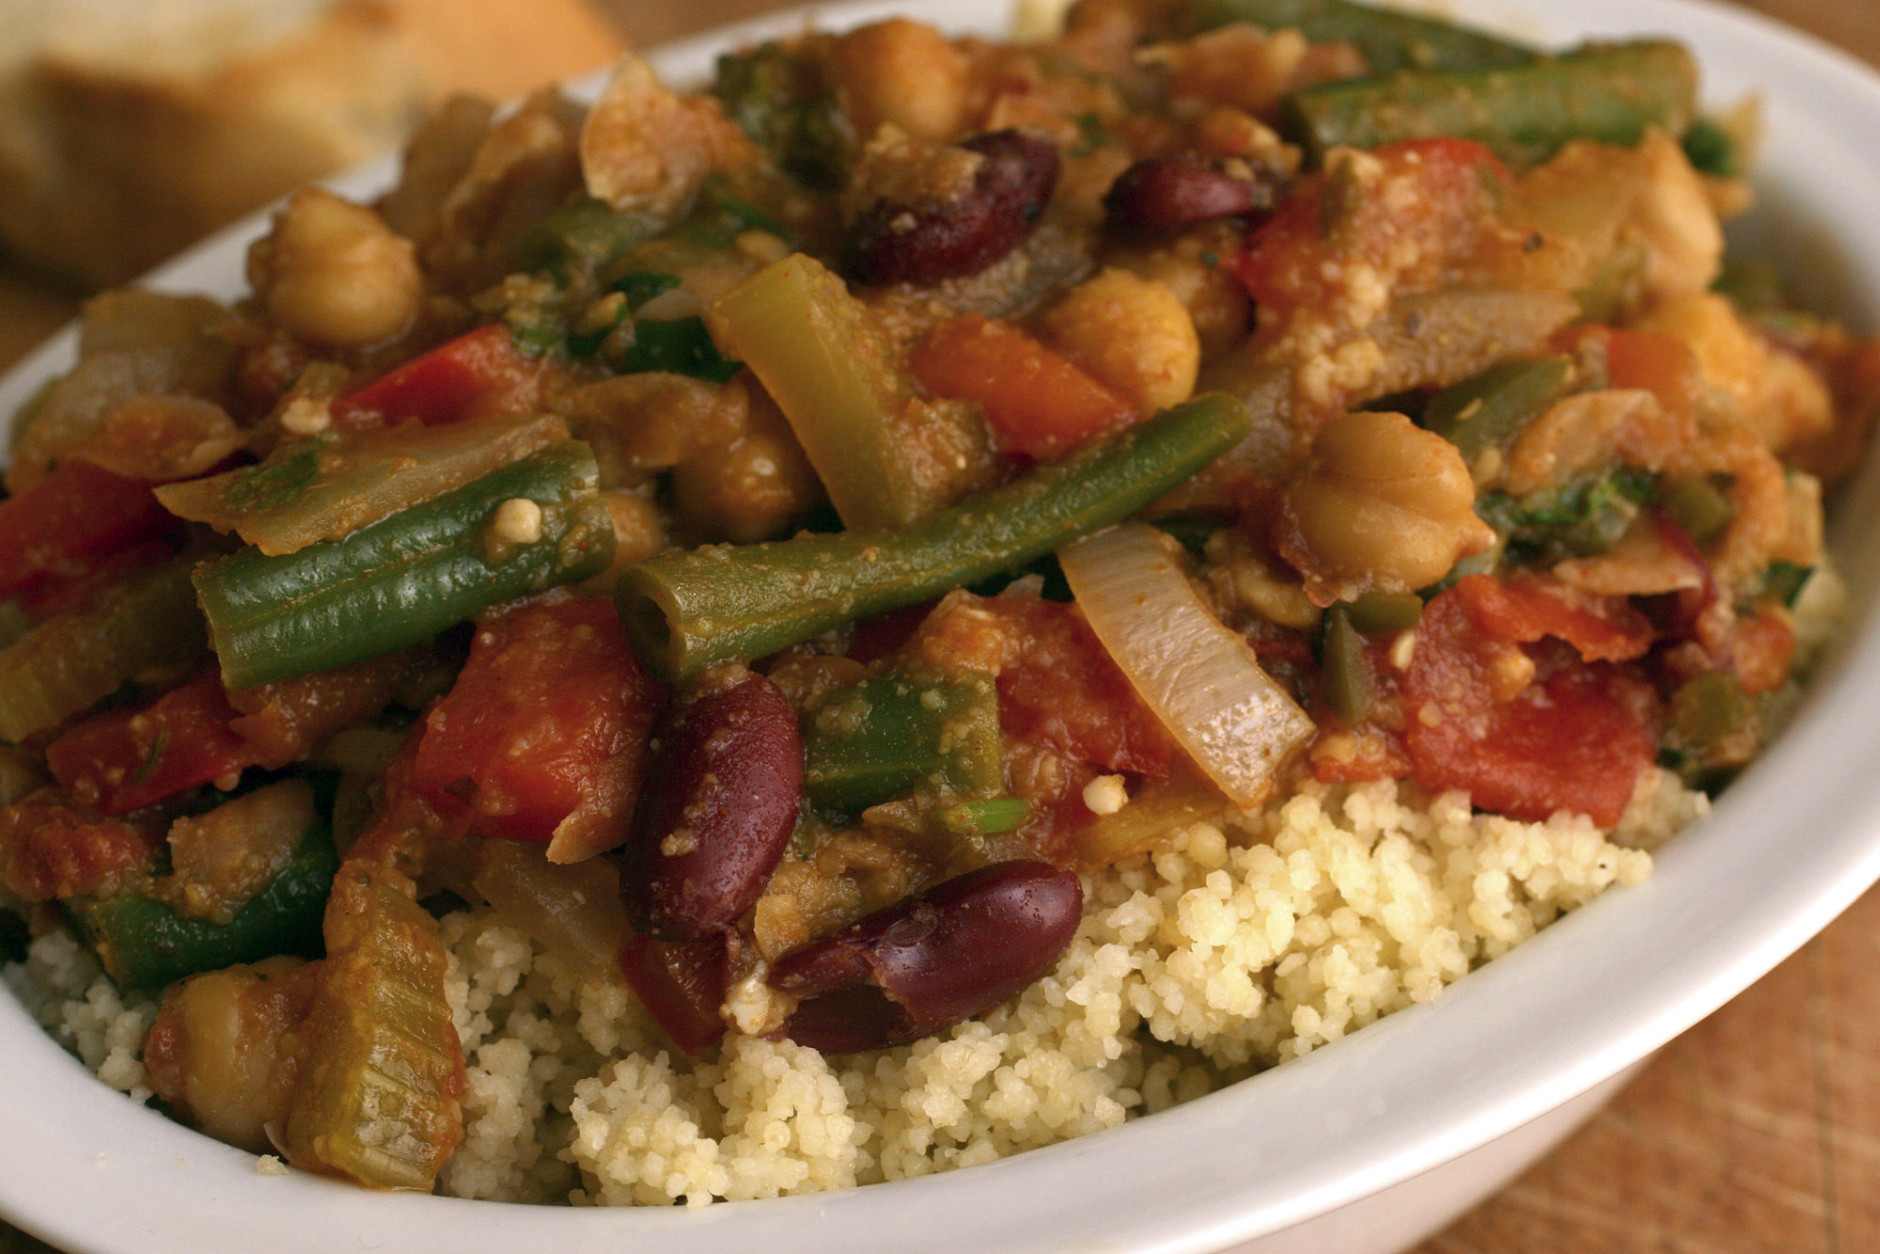 **FOR USE WITH AP LIFESTYLES**   Vegetable-bean Chili with Whole-wheat Couscous is seen in this Oct. 16, 2007 photo.  This dish comes together quickly and will hold nicely for 3 days or can be frozen for 3 months. Prepare the couscous fresh whenever you decide to serve this spicy dish.  (AP Photo/Larry Crowe)